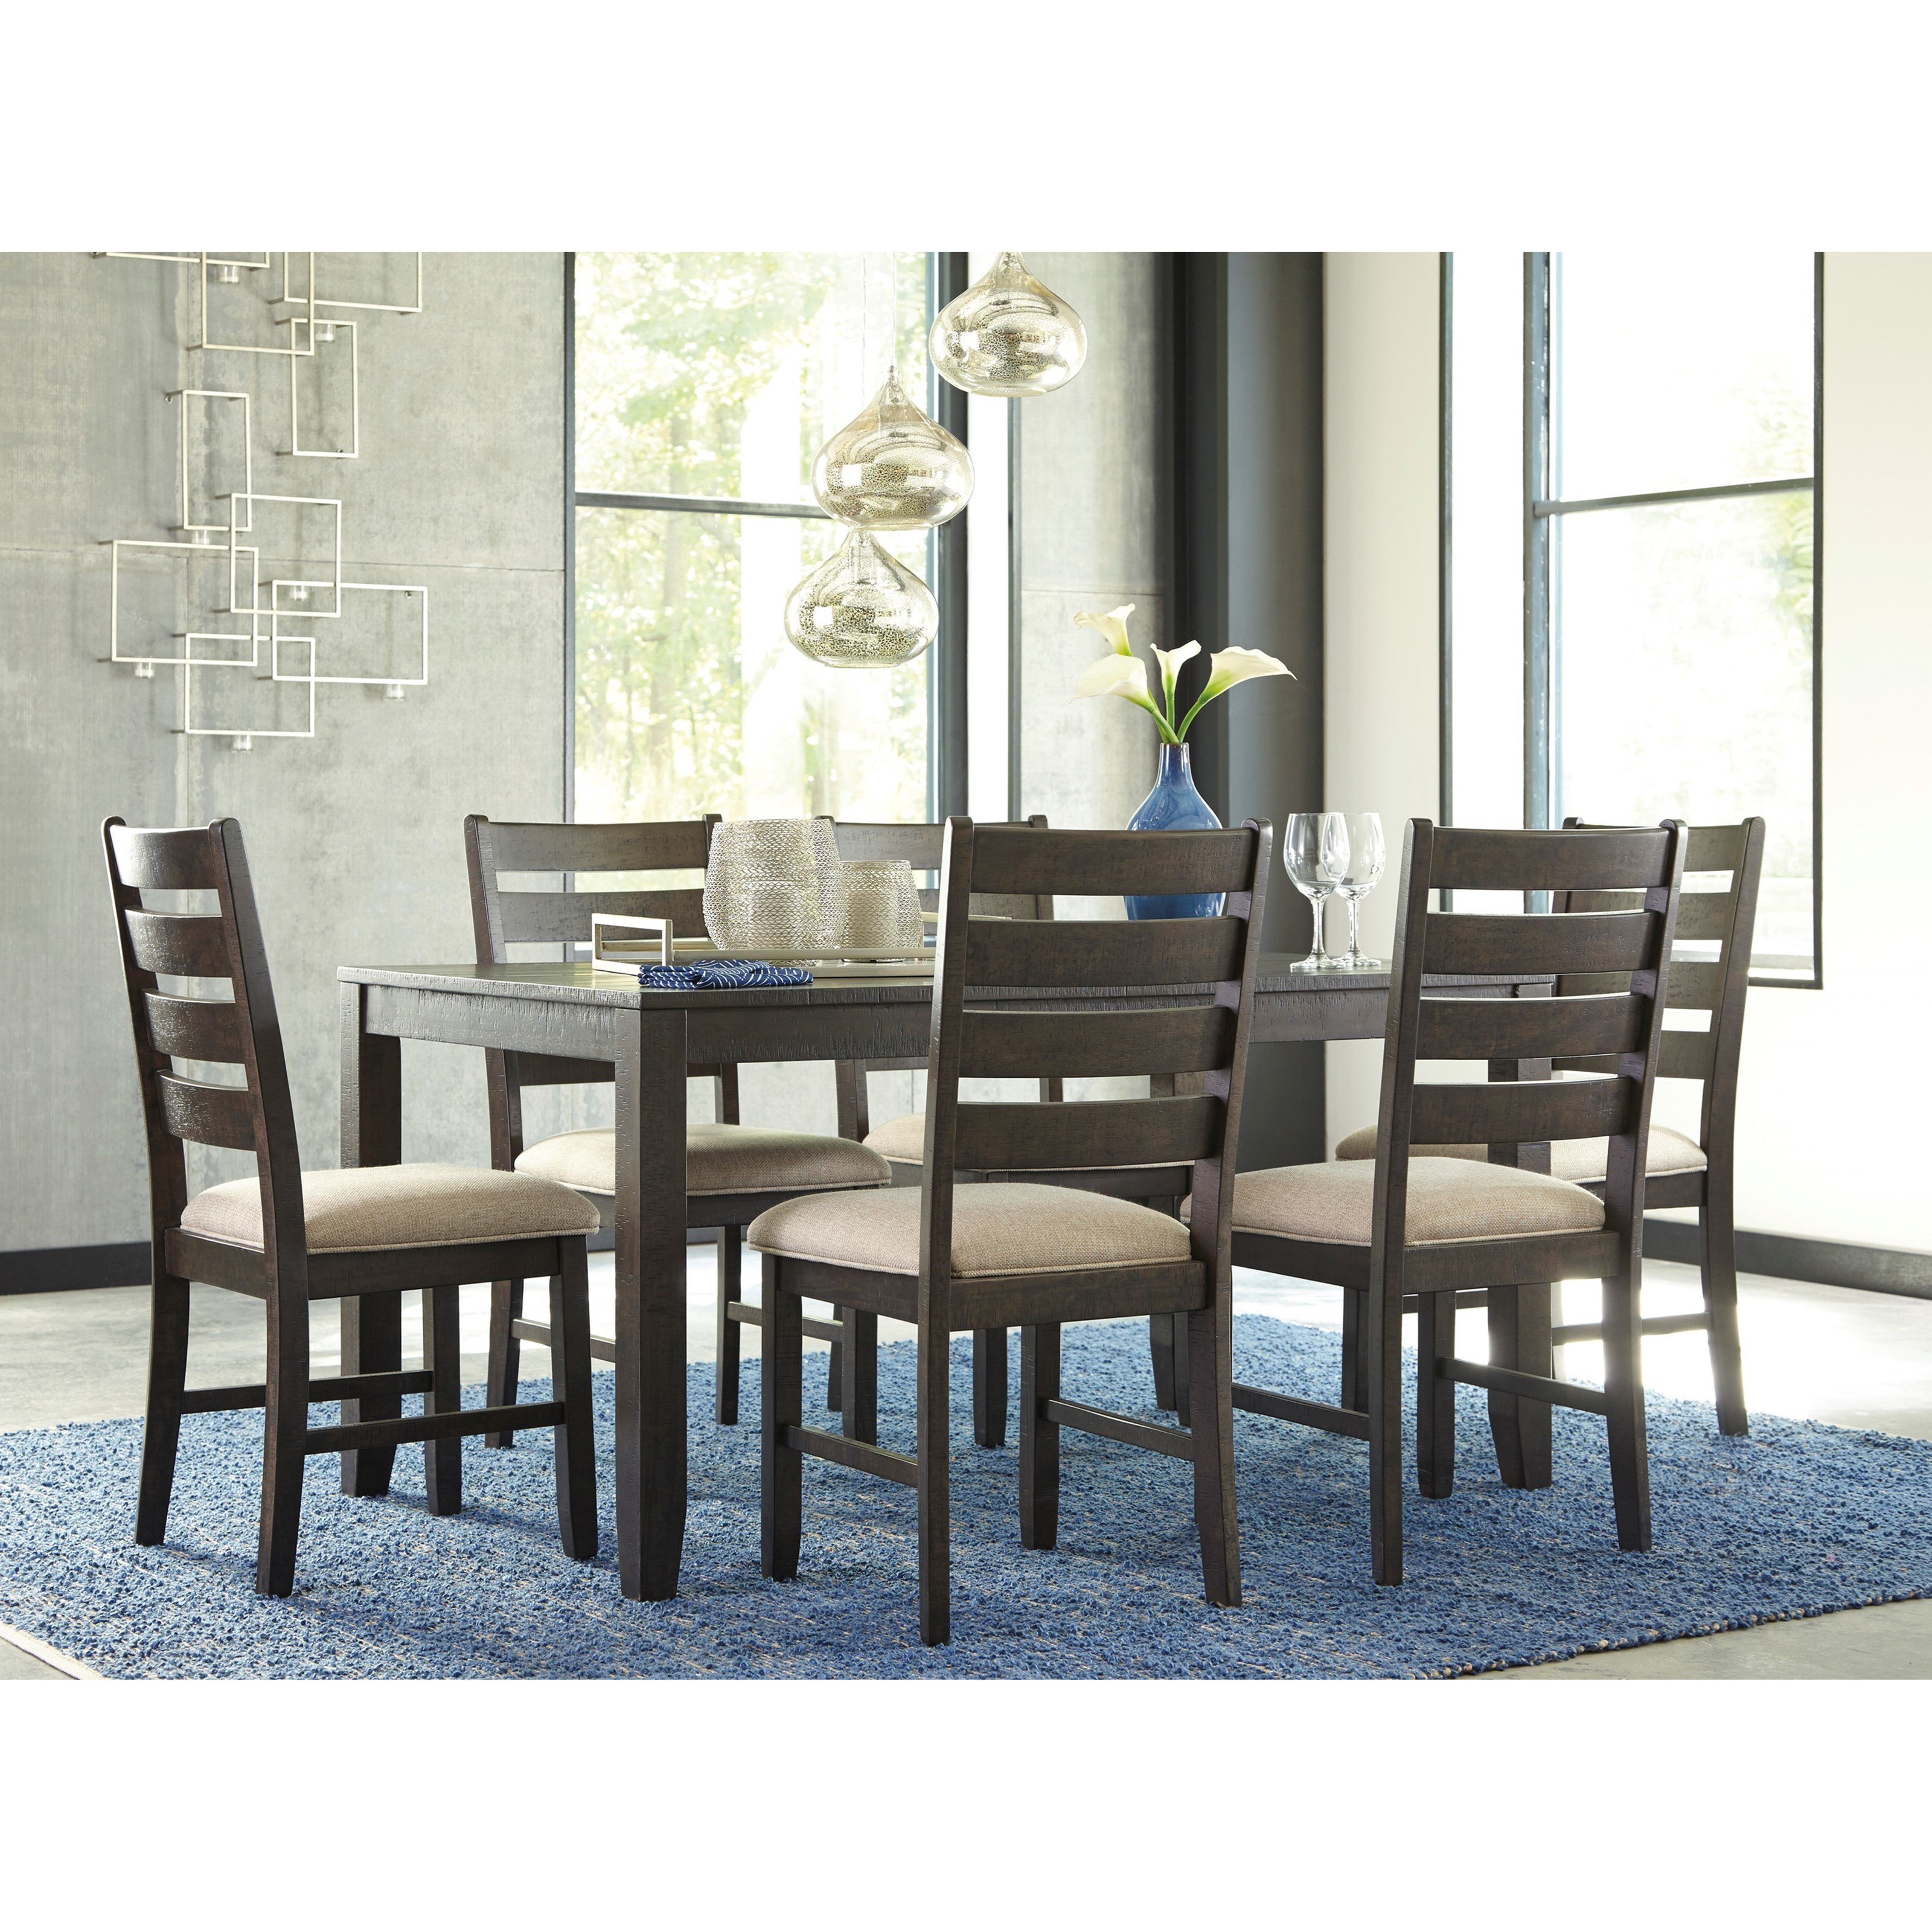 Contemporary 7 Piece Dining Room Table Set